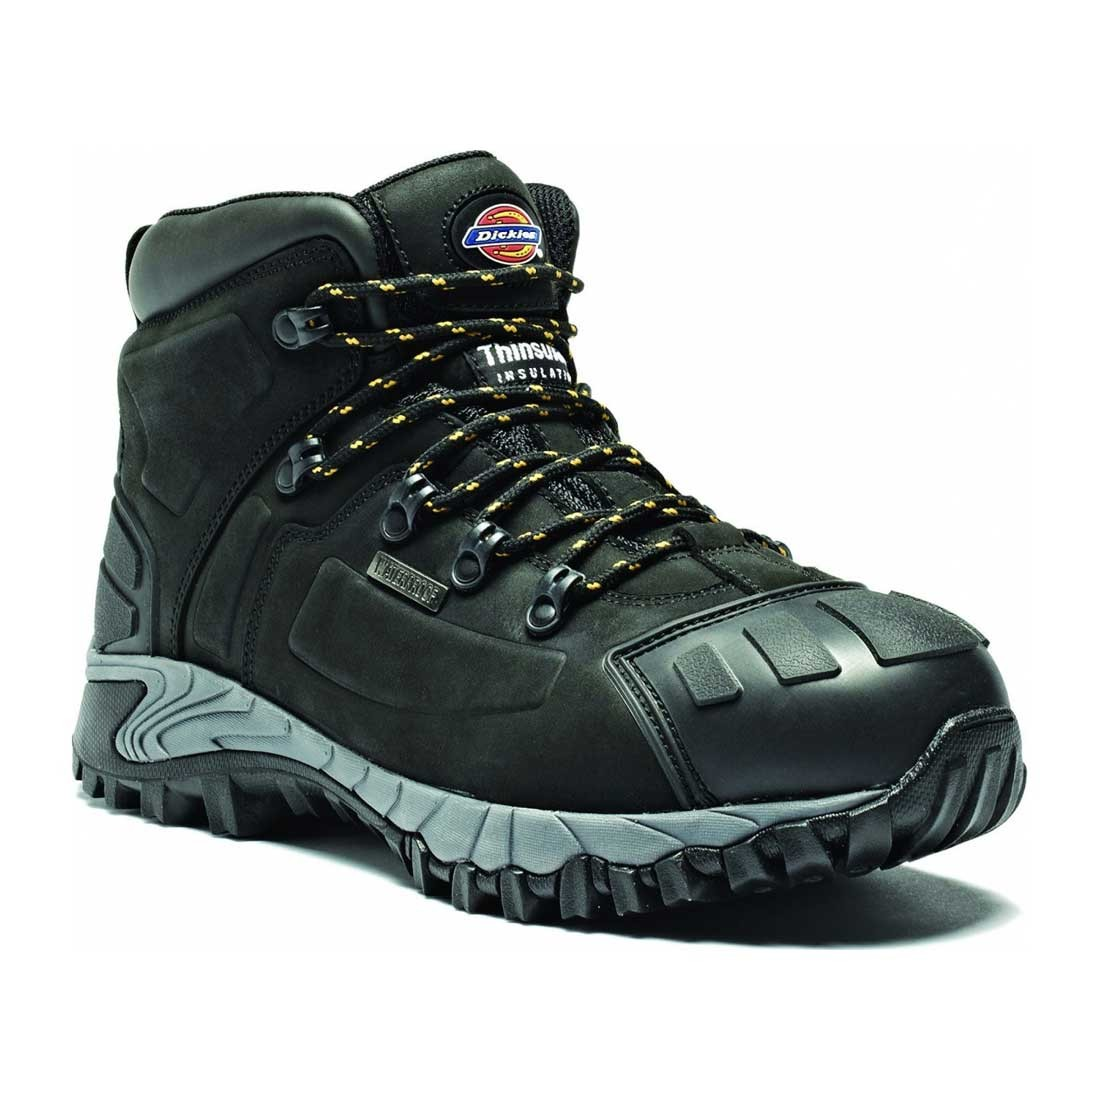 Dickies Super Safety Medway Black S3 Waterproof Hiker Safety Boots